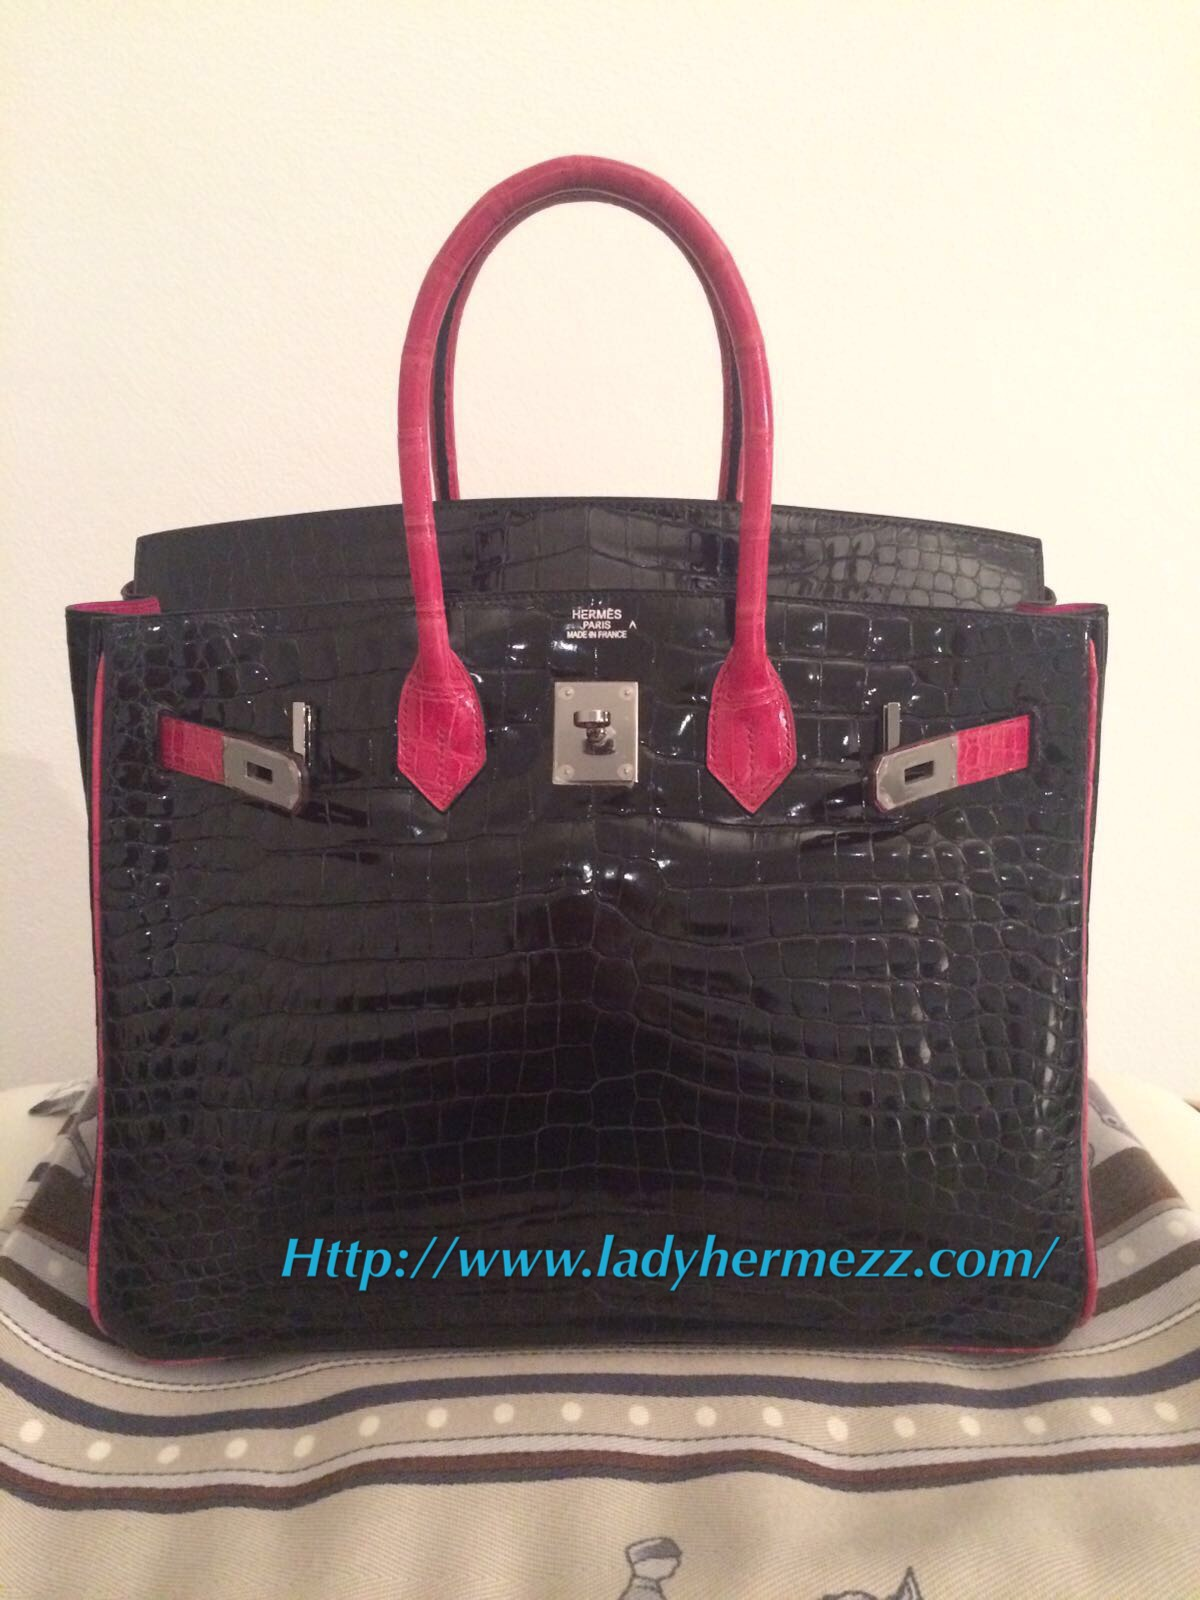 hermes ostrich birkin bag - Uncategorized Archives - LadyHermezz.Com